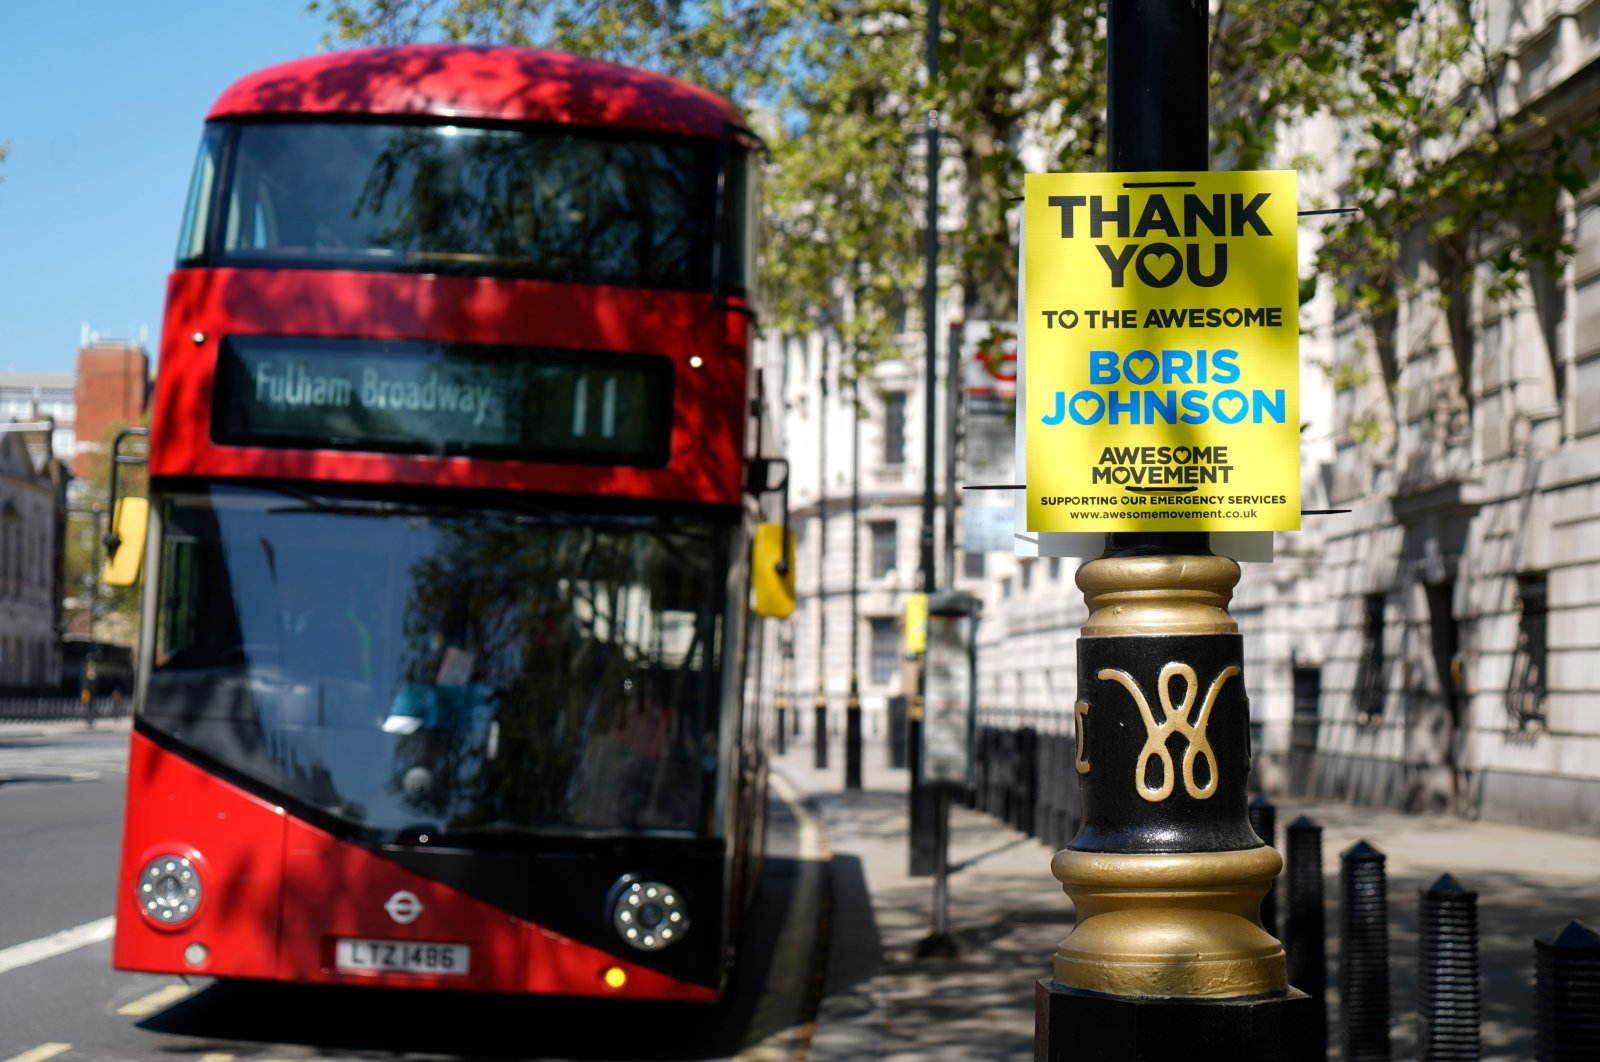 A sign in support of Britain's Prime Minister Boris Johnson is attached to a lamp post in central London, April 20, 2020. (AFP Photo)